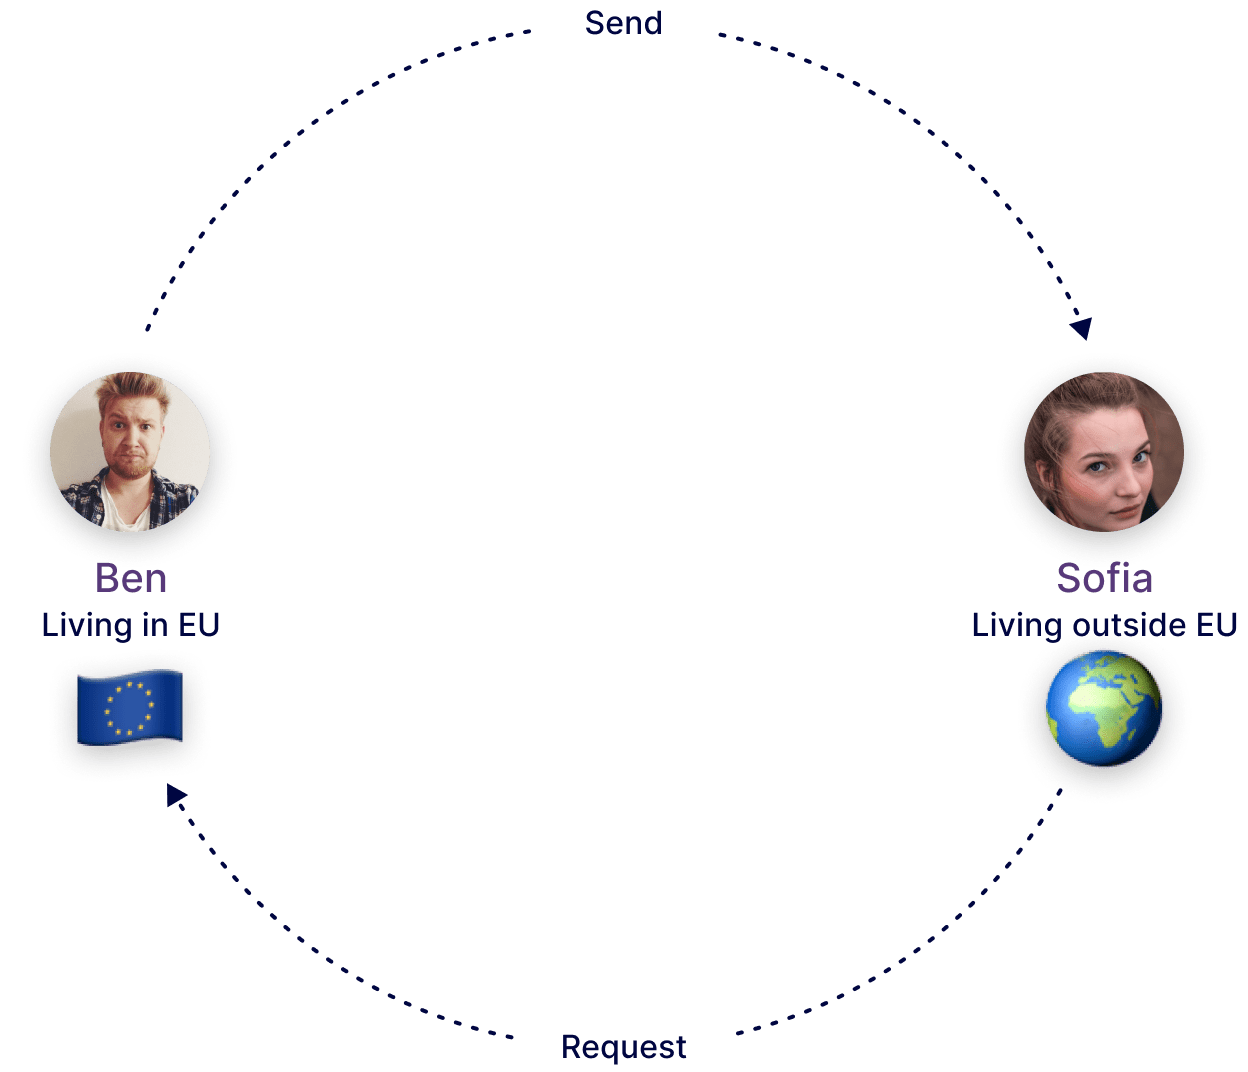 How to connect the world